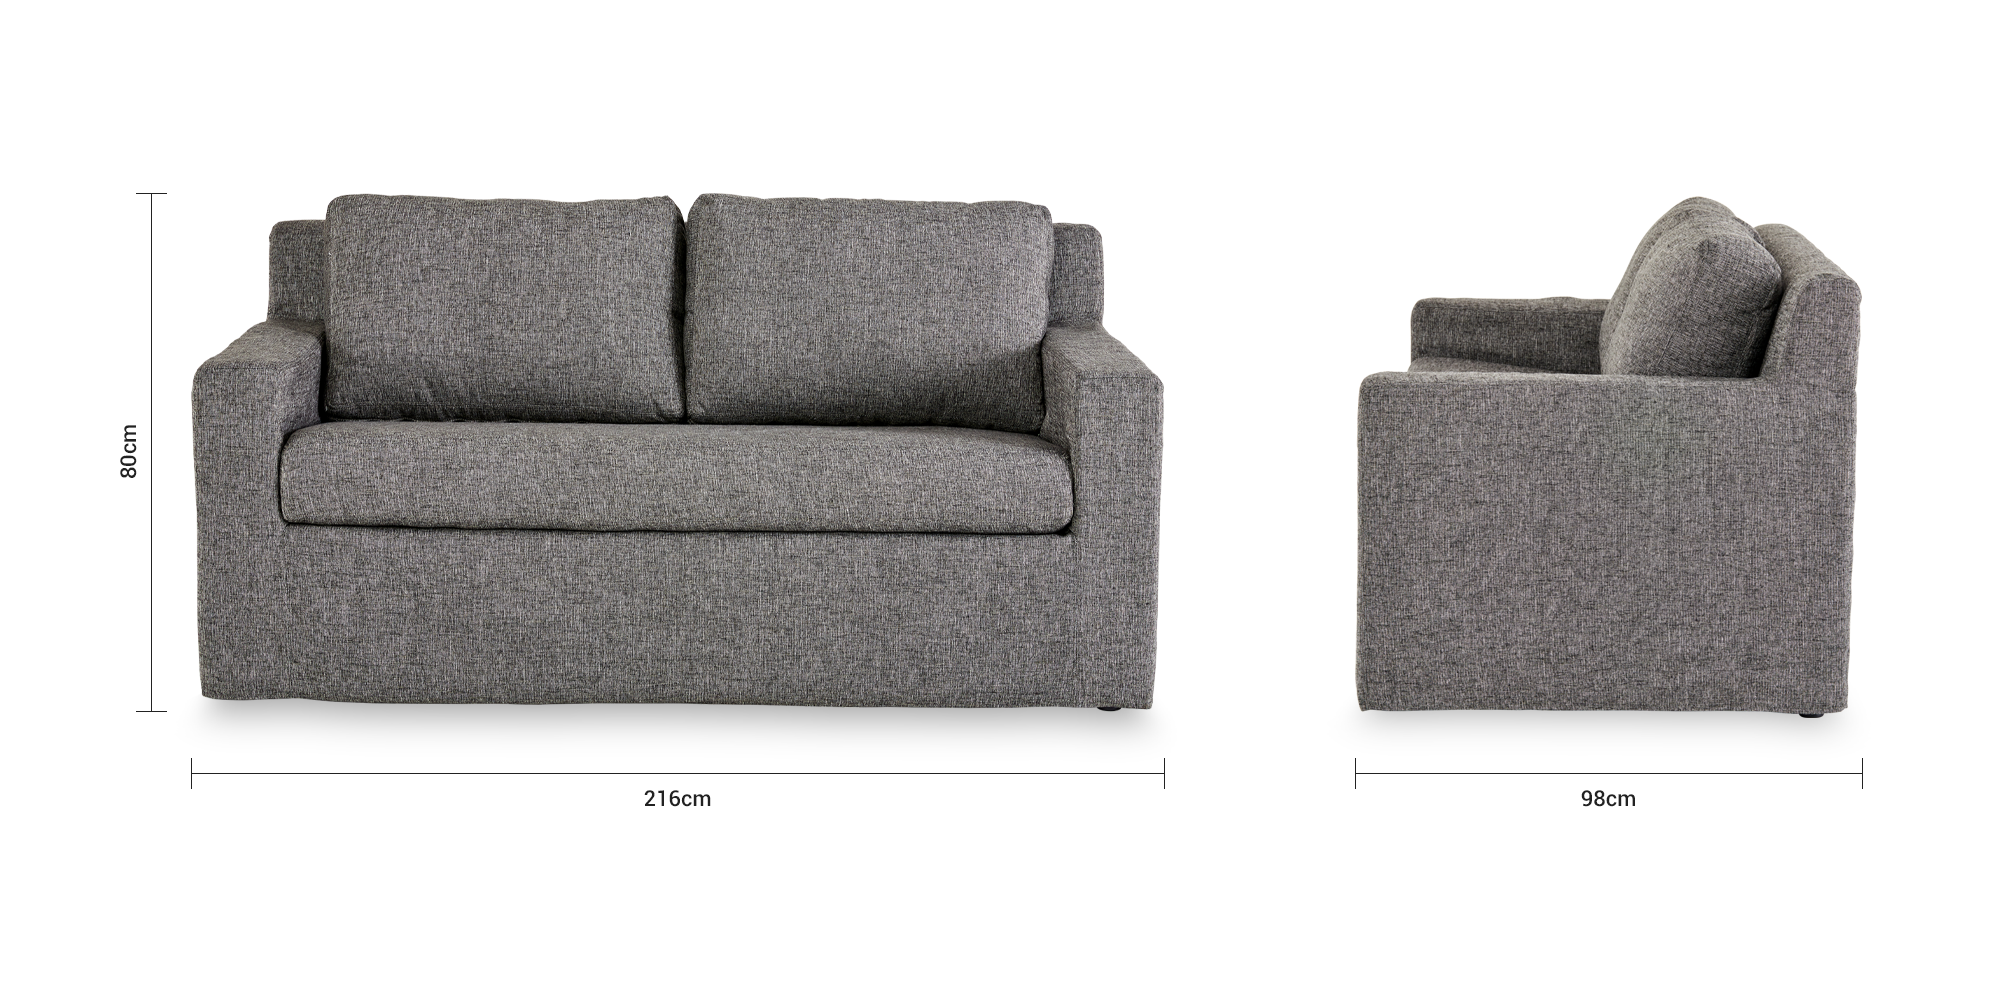 Ollie Slipcover 3 Seater Couch